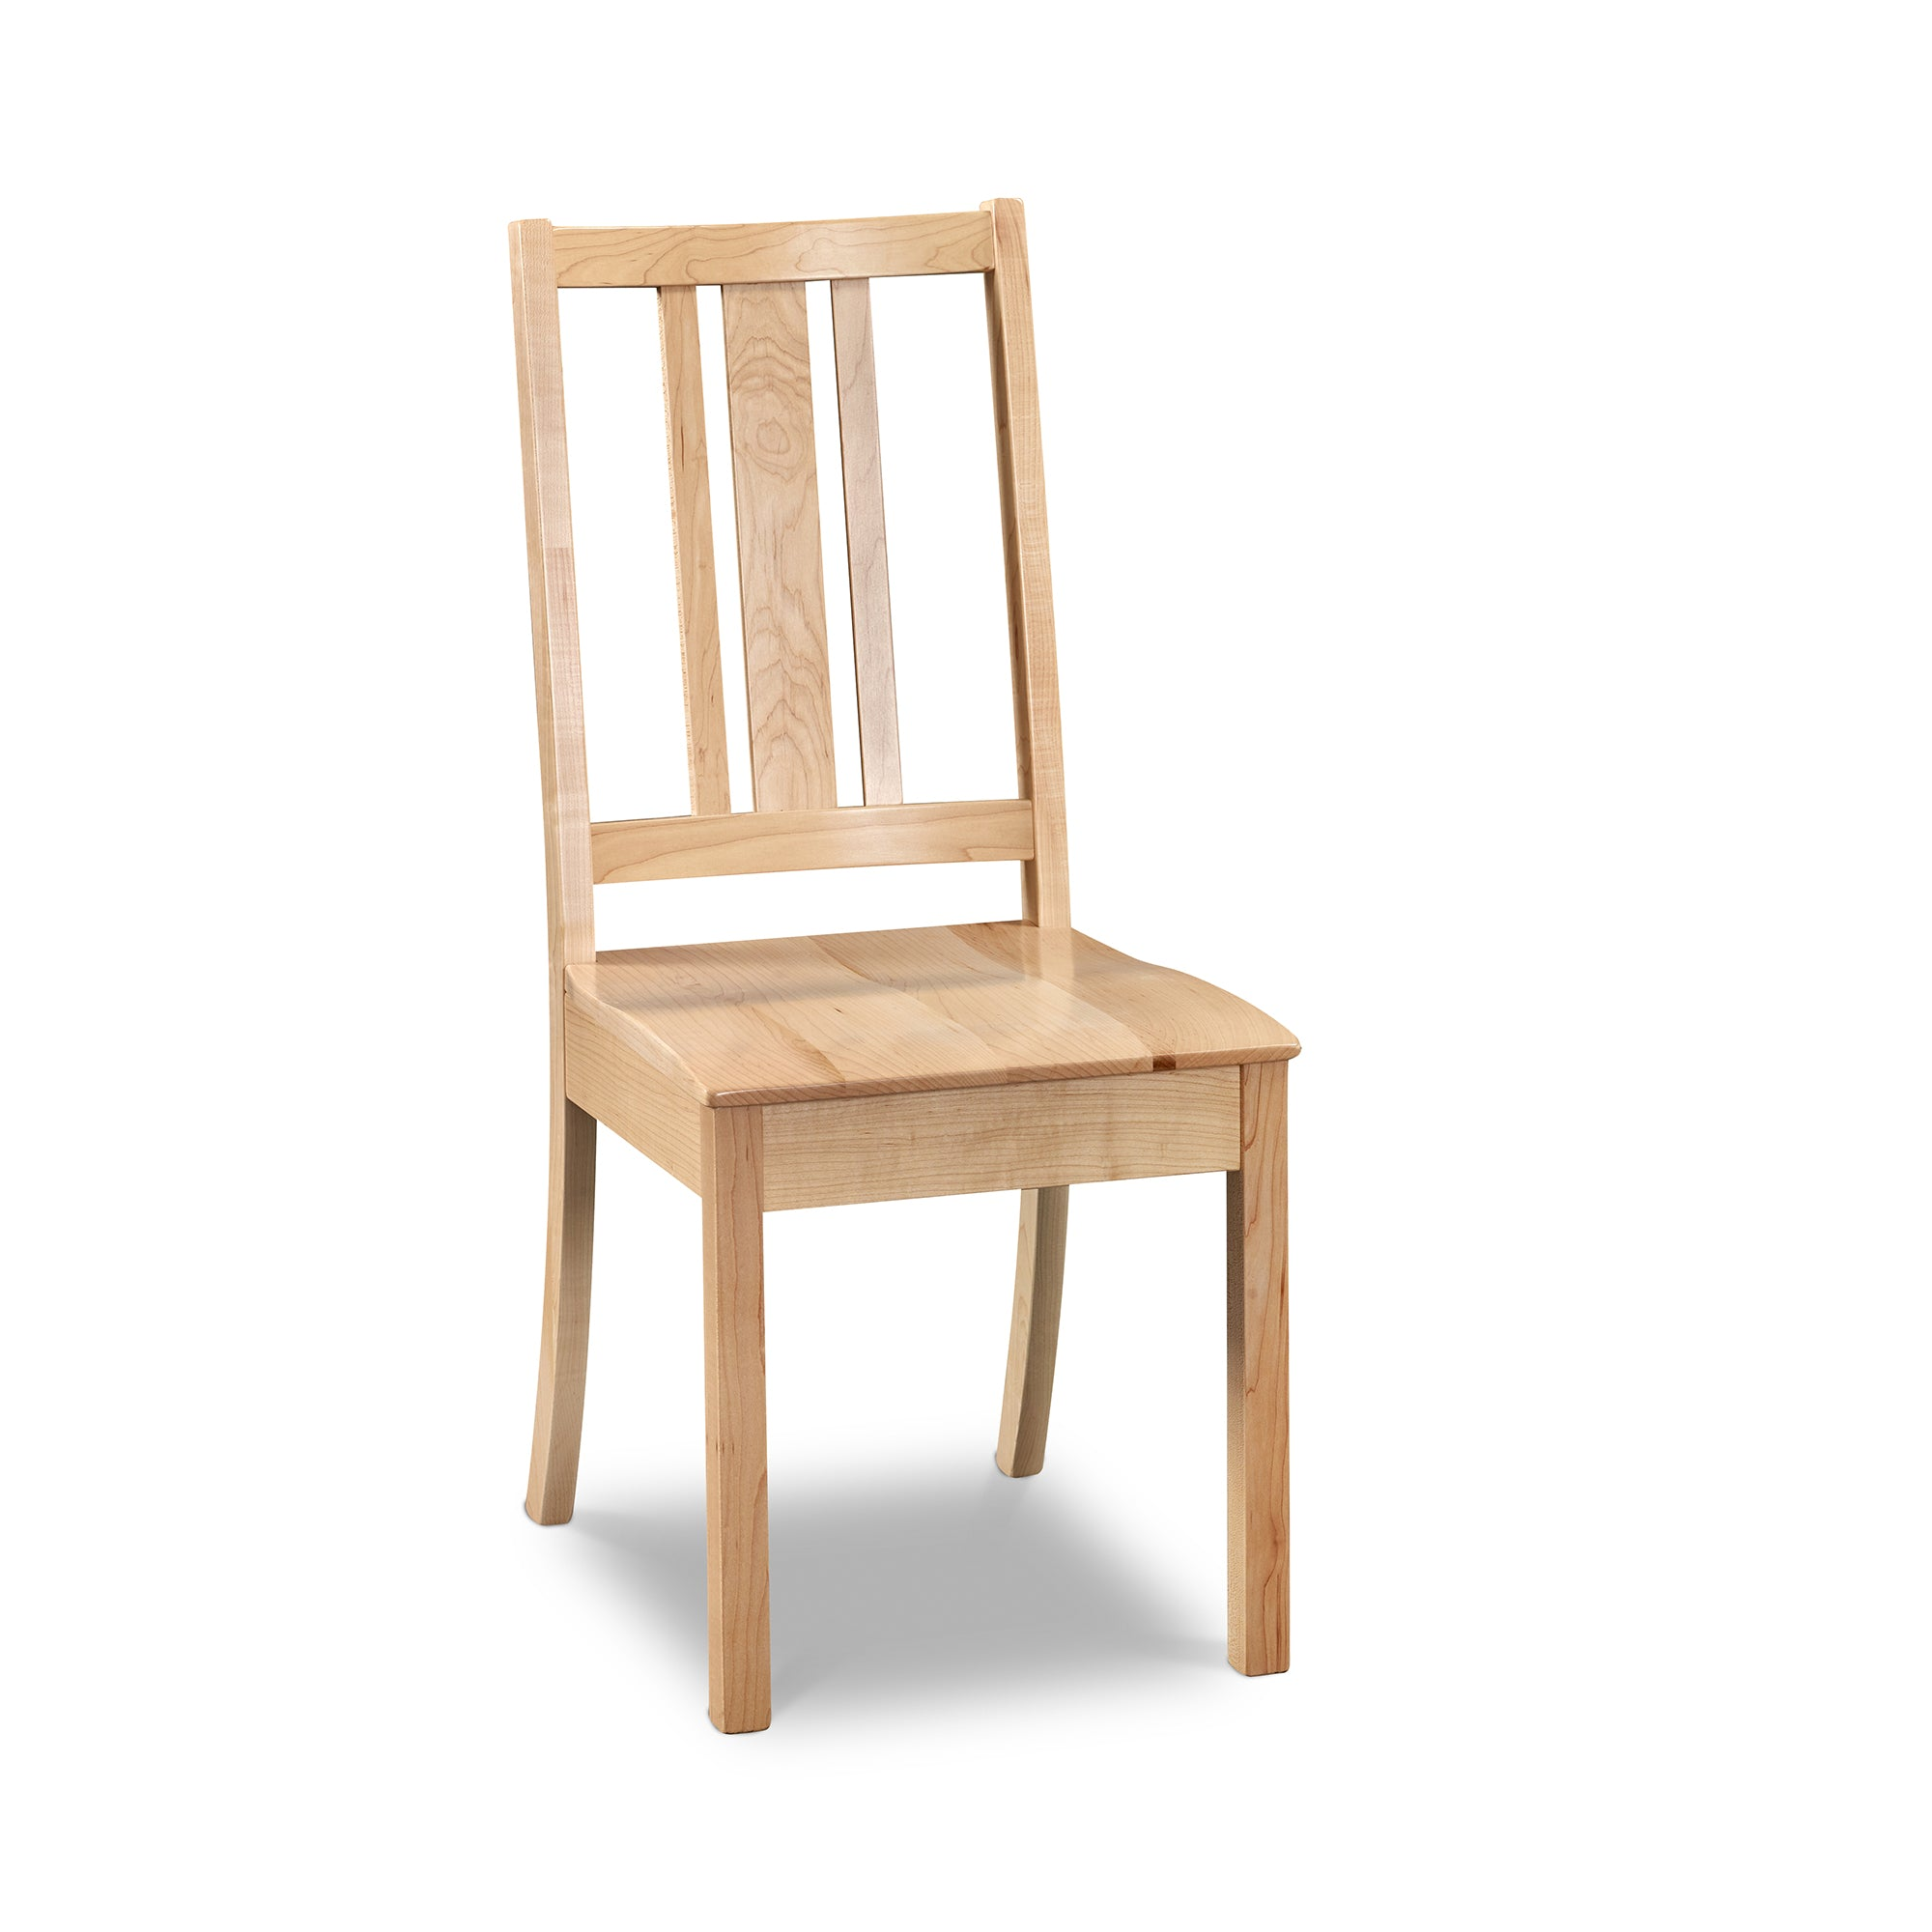 Simple Bungalow inspired side chair with squared back in hard maple wood